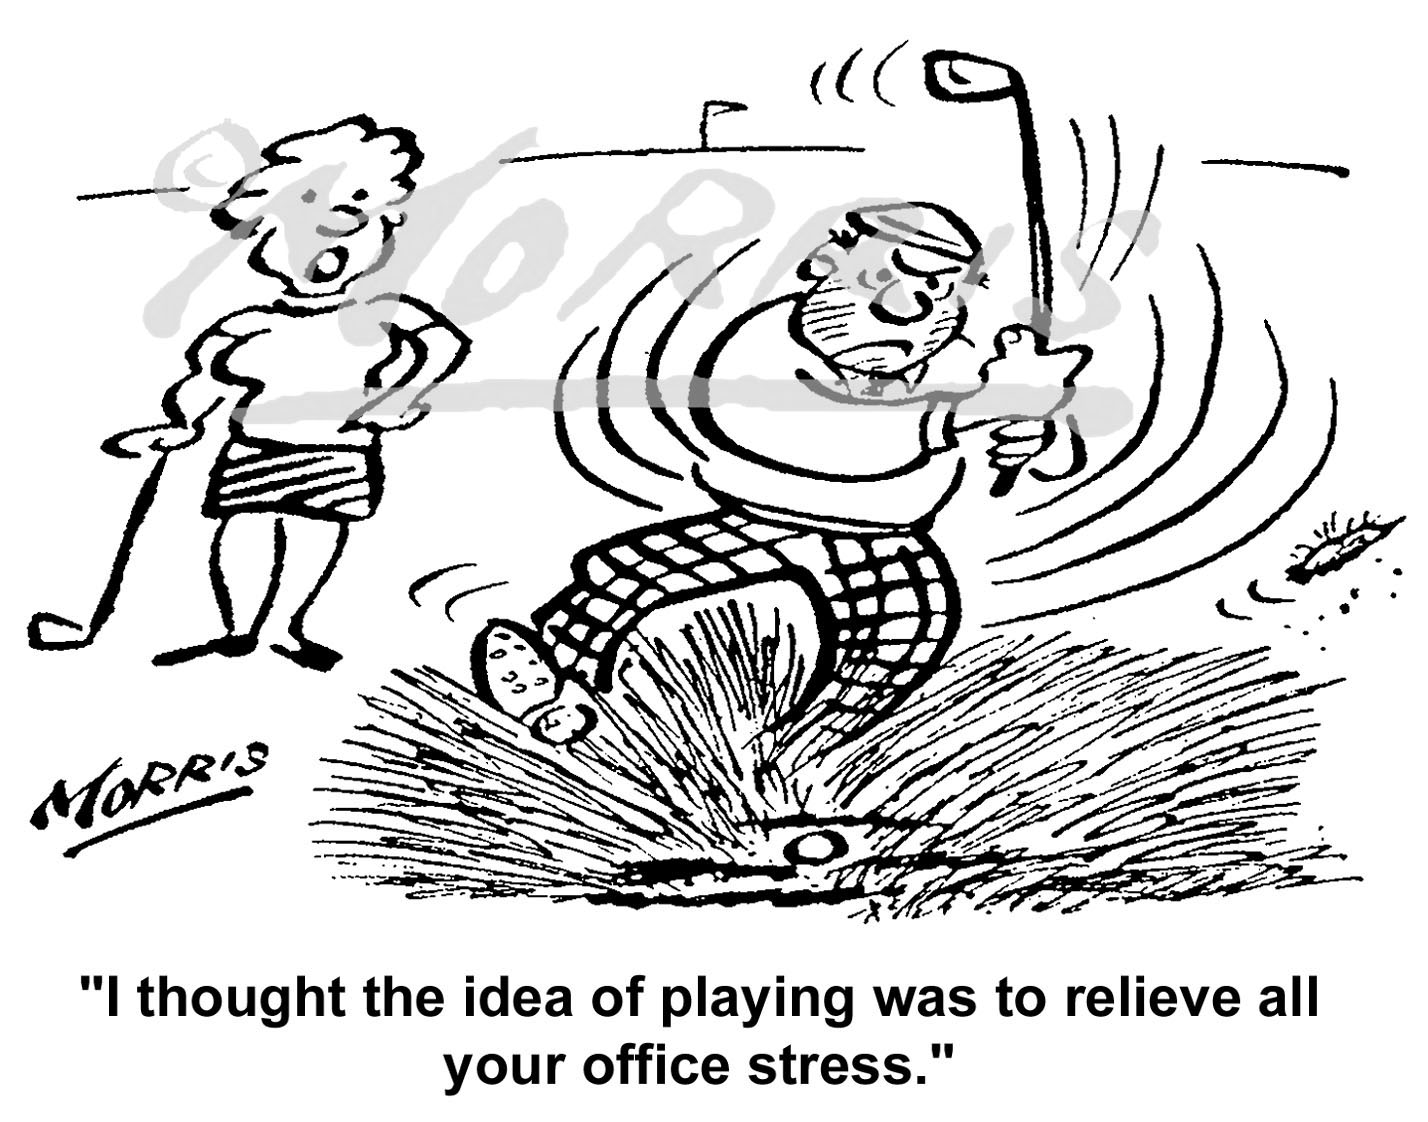 Stress in the office and workplace cartoon, Golf cartoon and Golfing cartoon – Ref: 5208bw